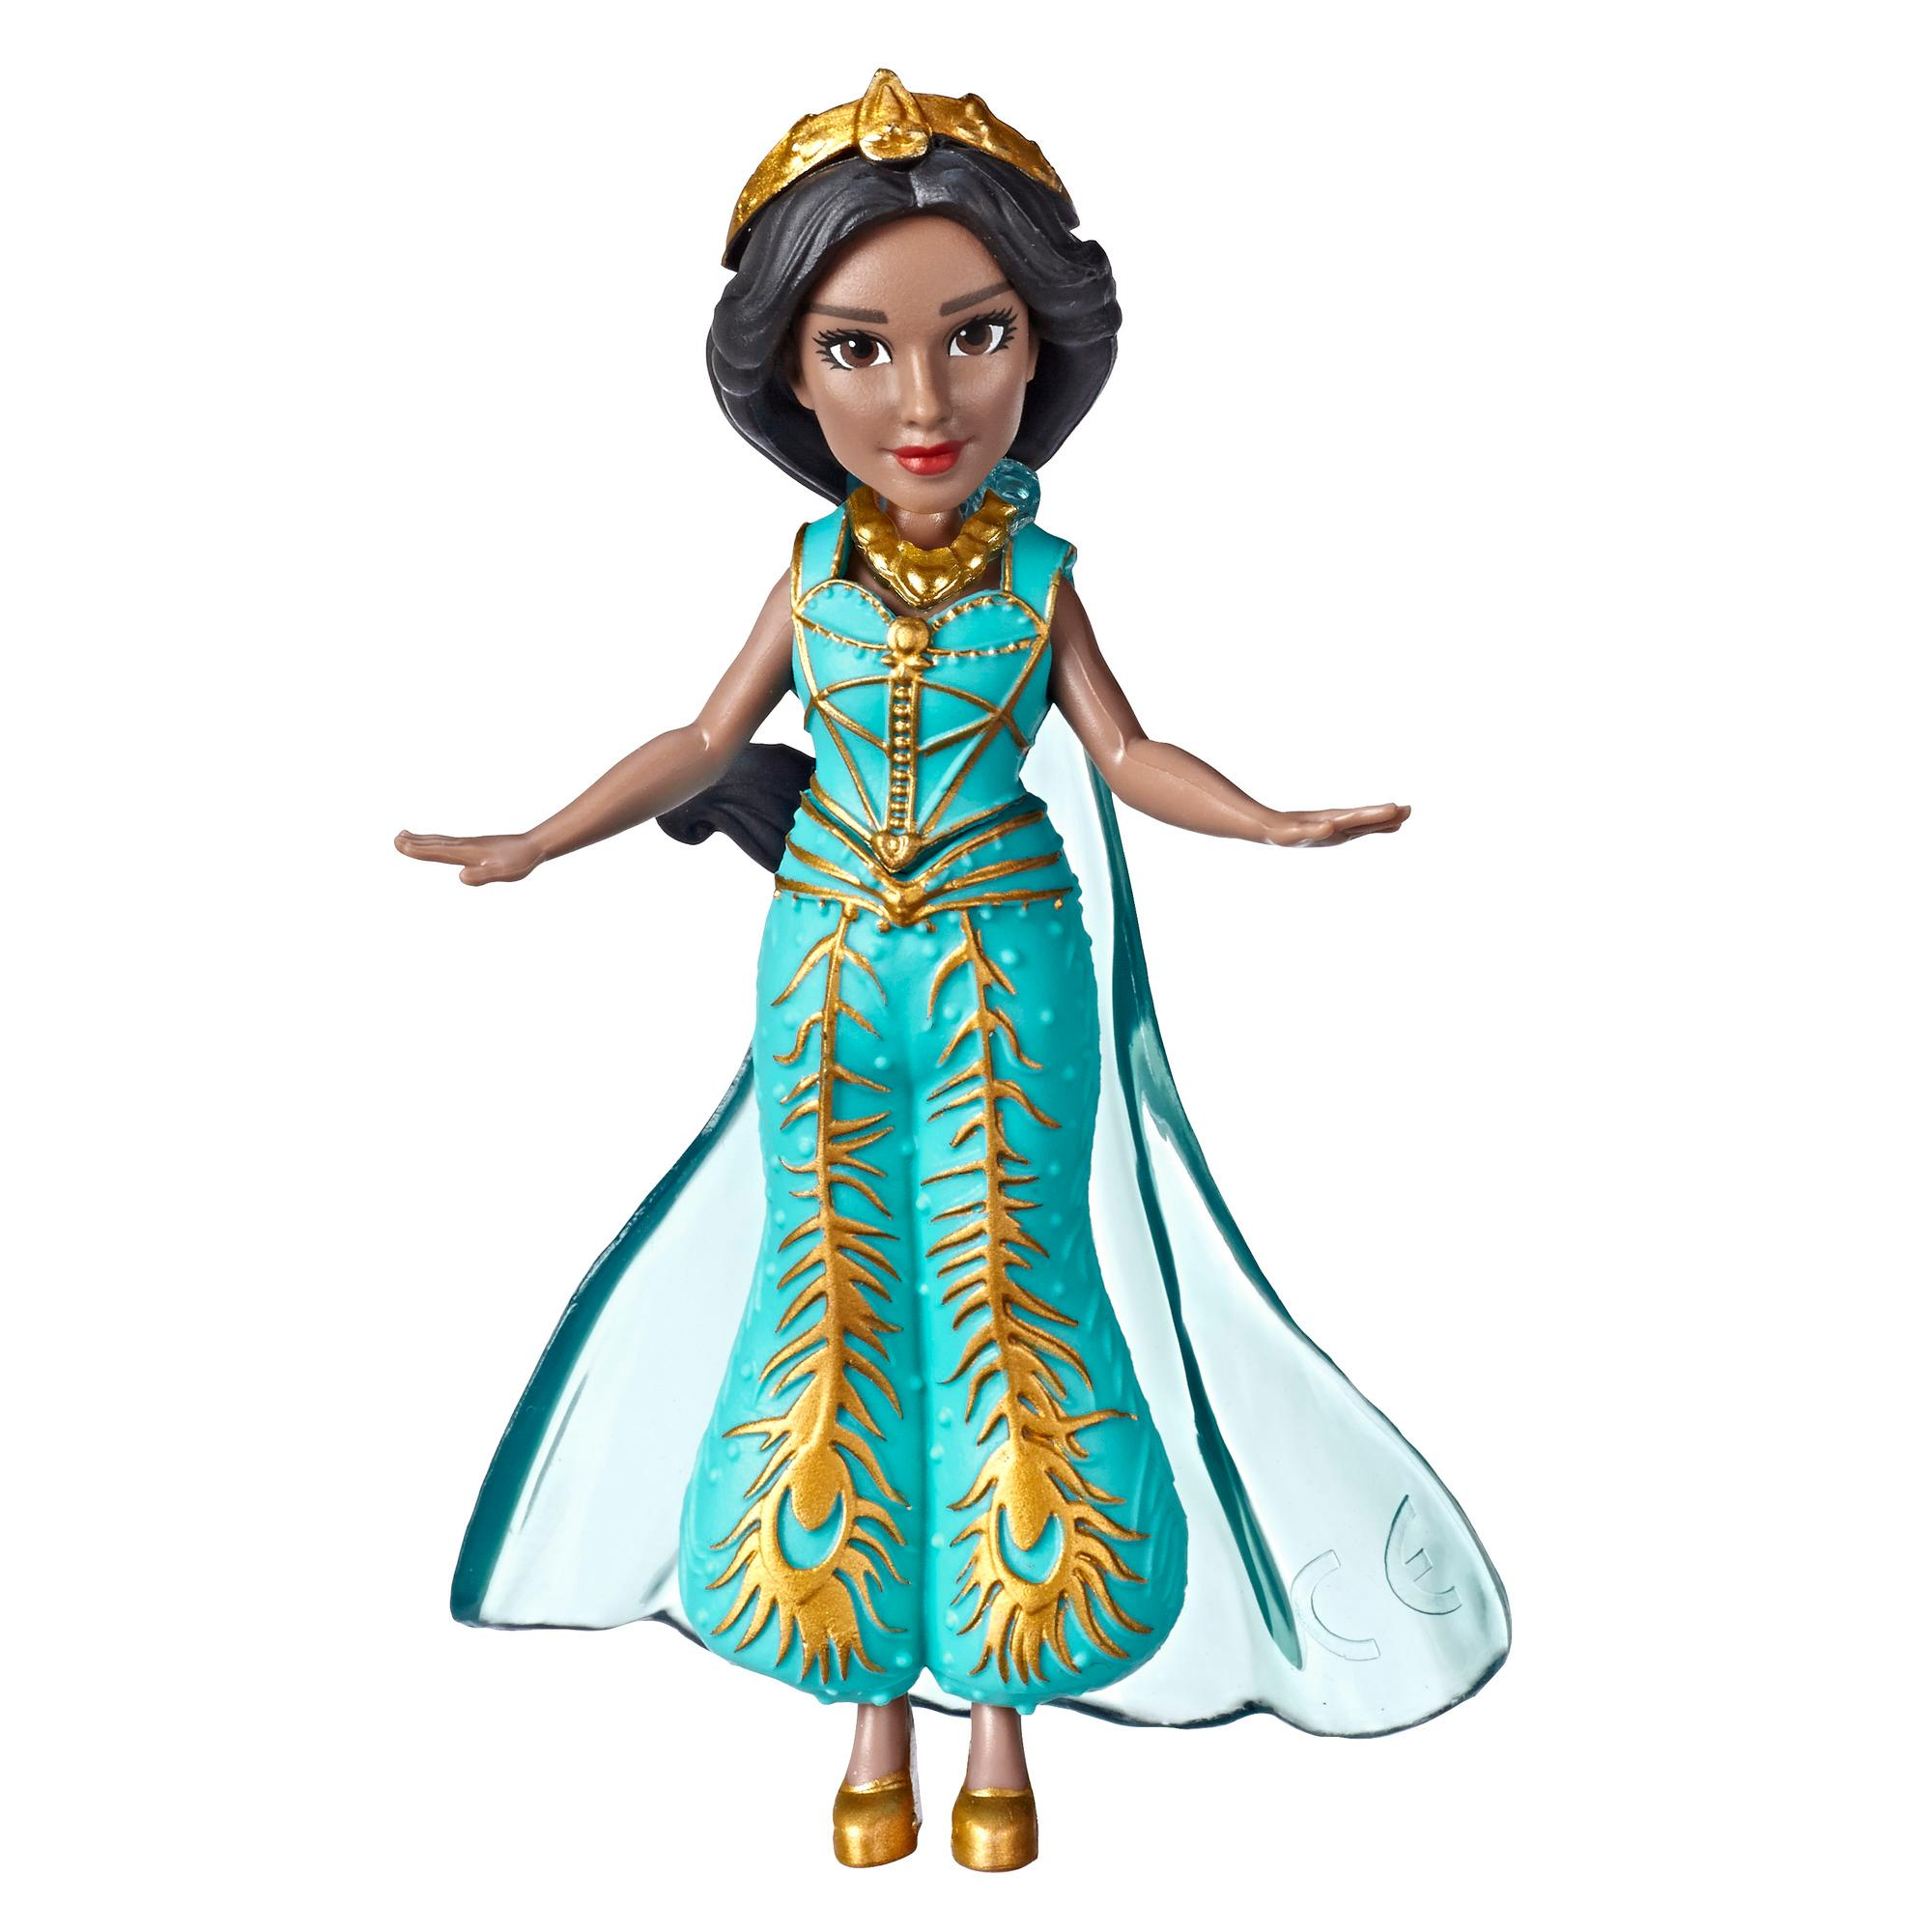 Disney Collectible Princess Jasmine Small Doll in Teal Dress Inspired by Disney's Aladdin Live-Action Movie, Toy for Kids Ages 3 and Up, 3.5 Inches